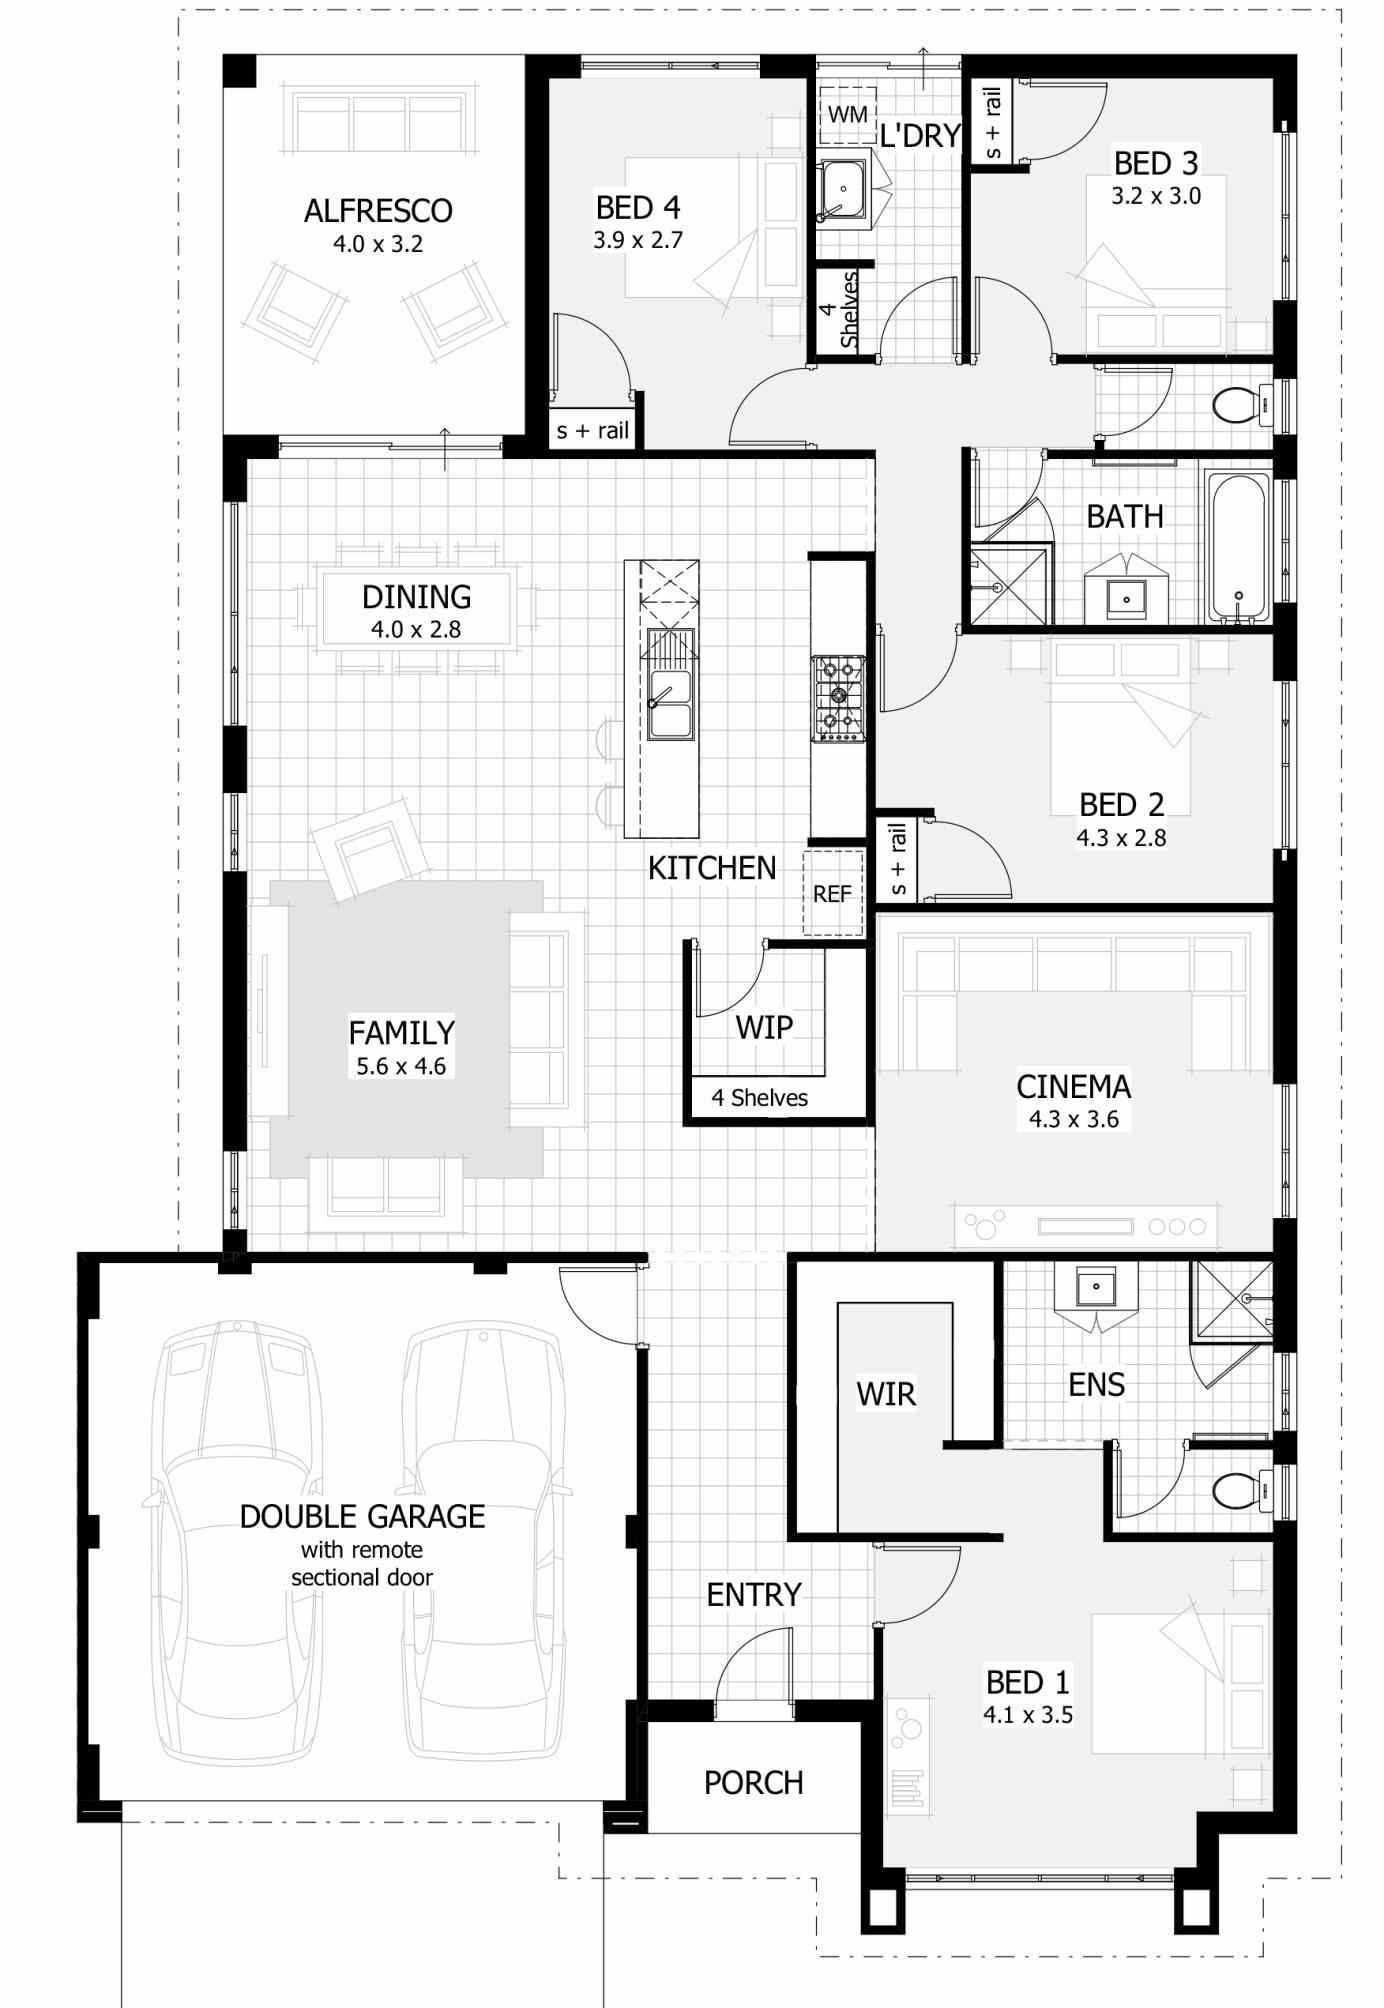 Lovely Single Story 4 Bedroom Farmhouse Plans House Plans